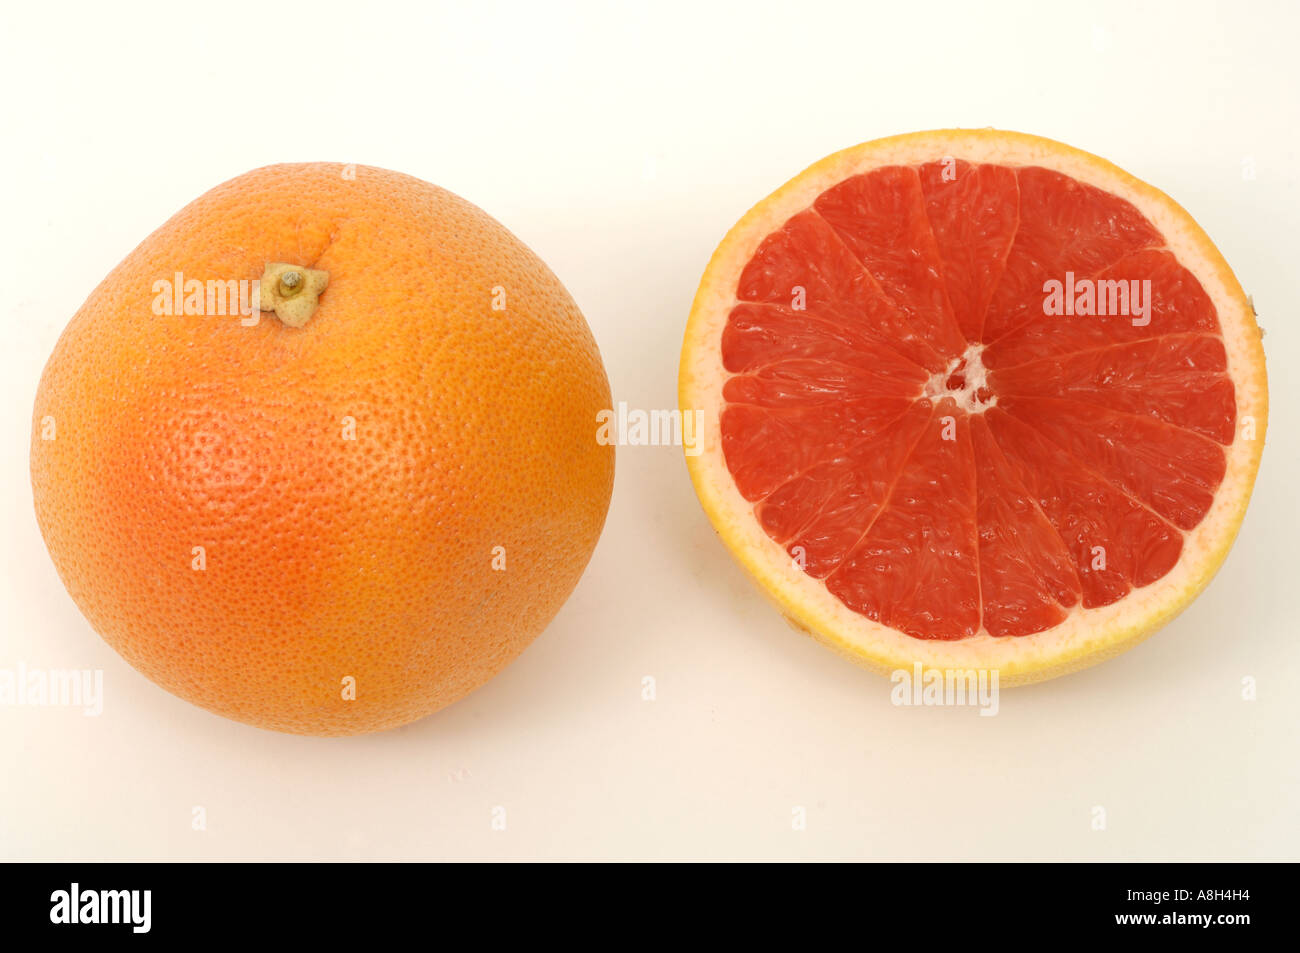 Red grapefruit supermarket bought and in normal shop condition - Stock Image